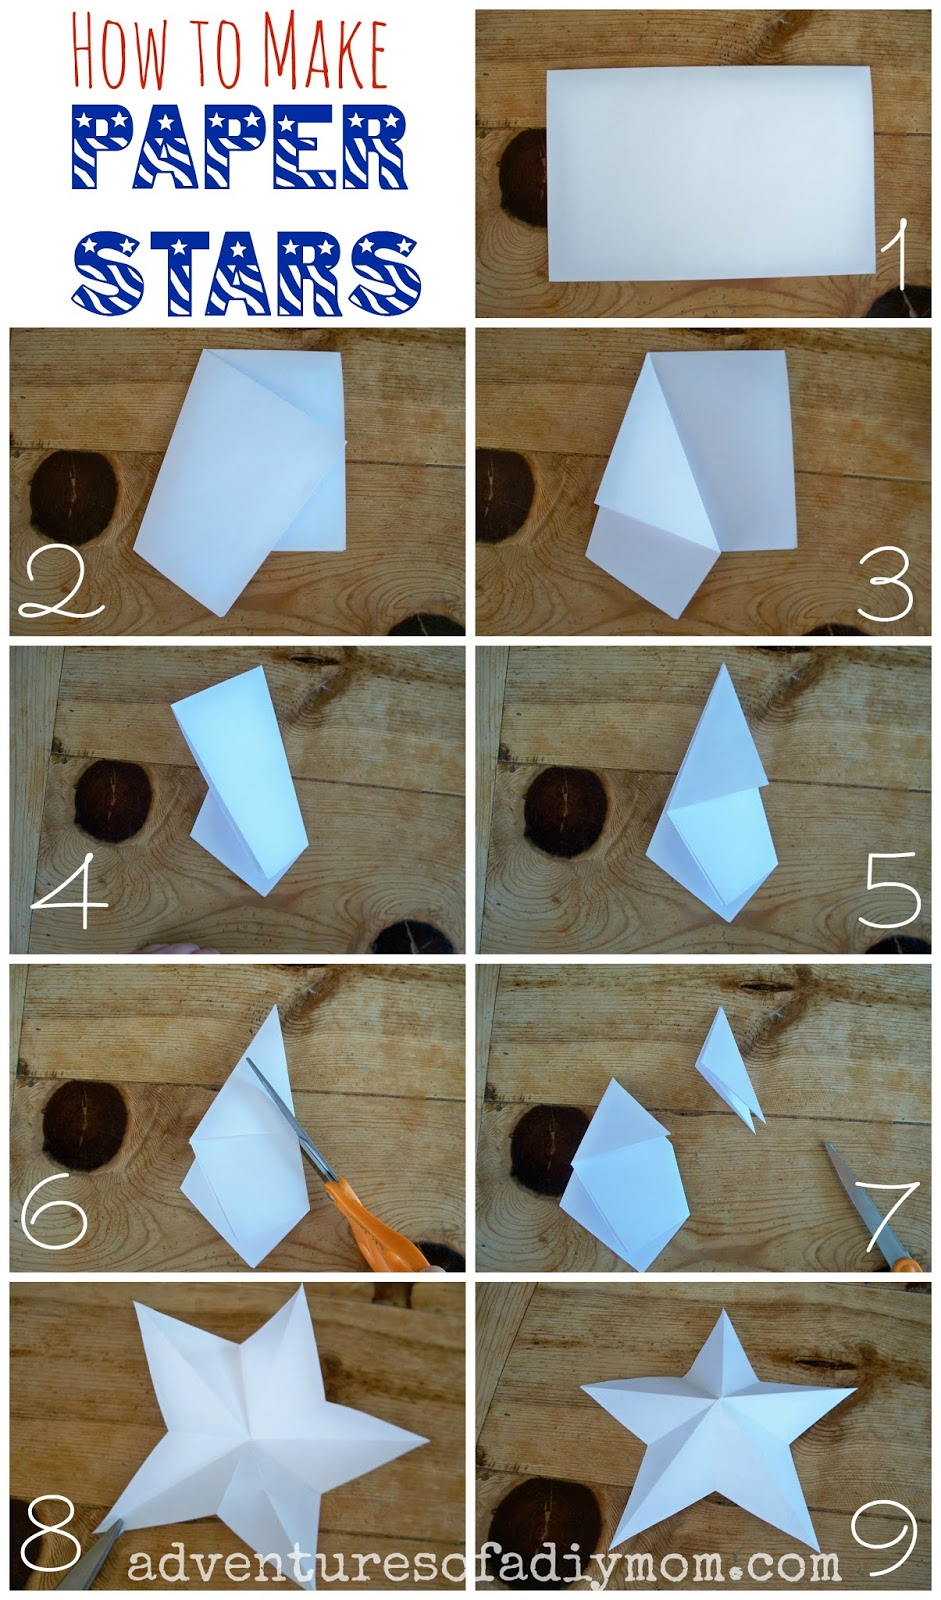 how to make 3 d paper stars adventures of a diy mom